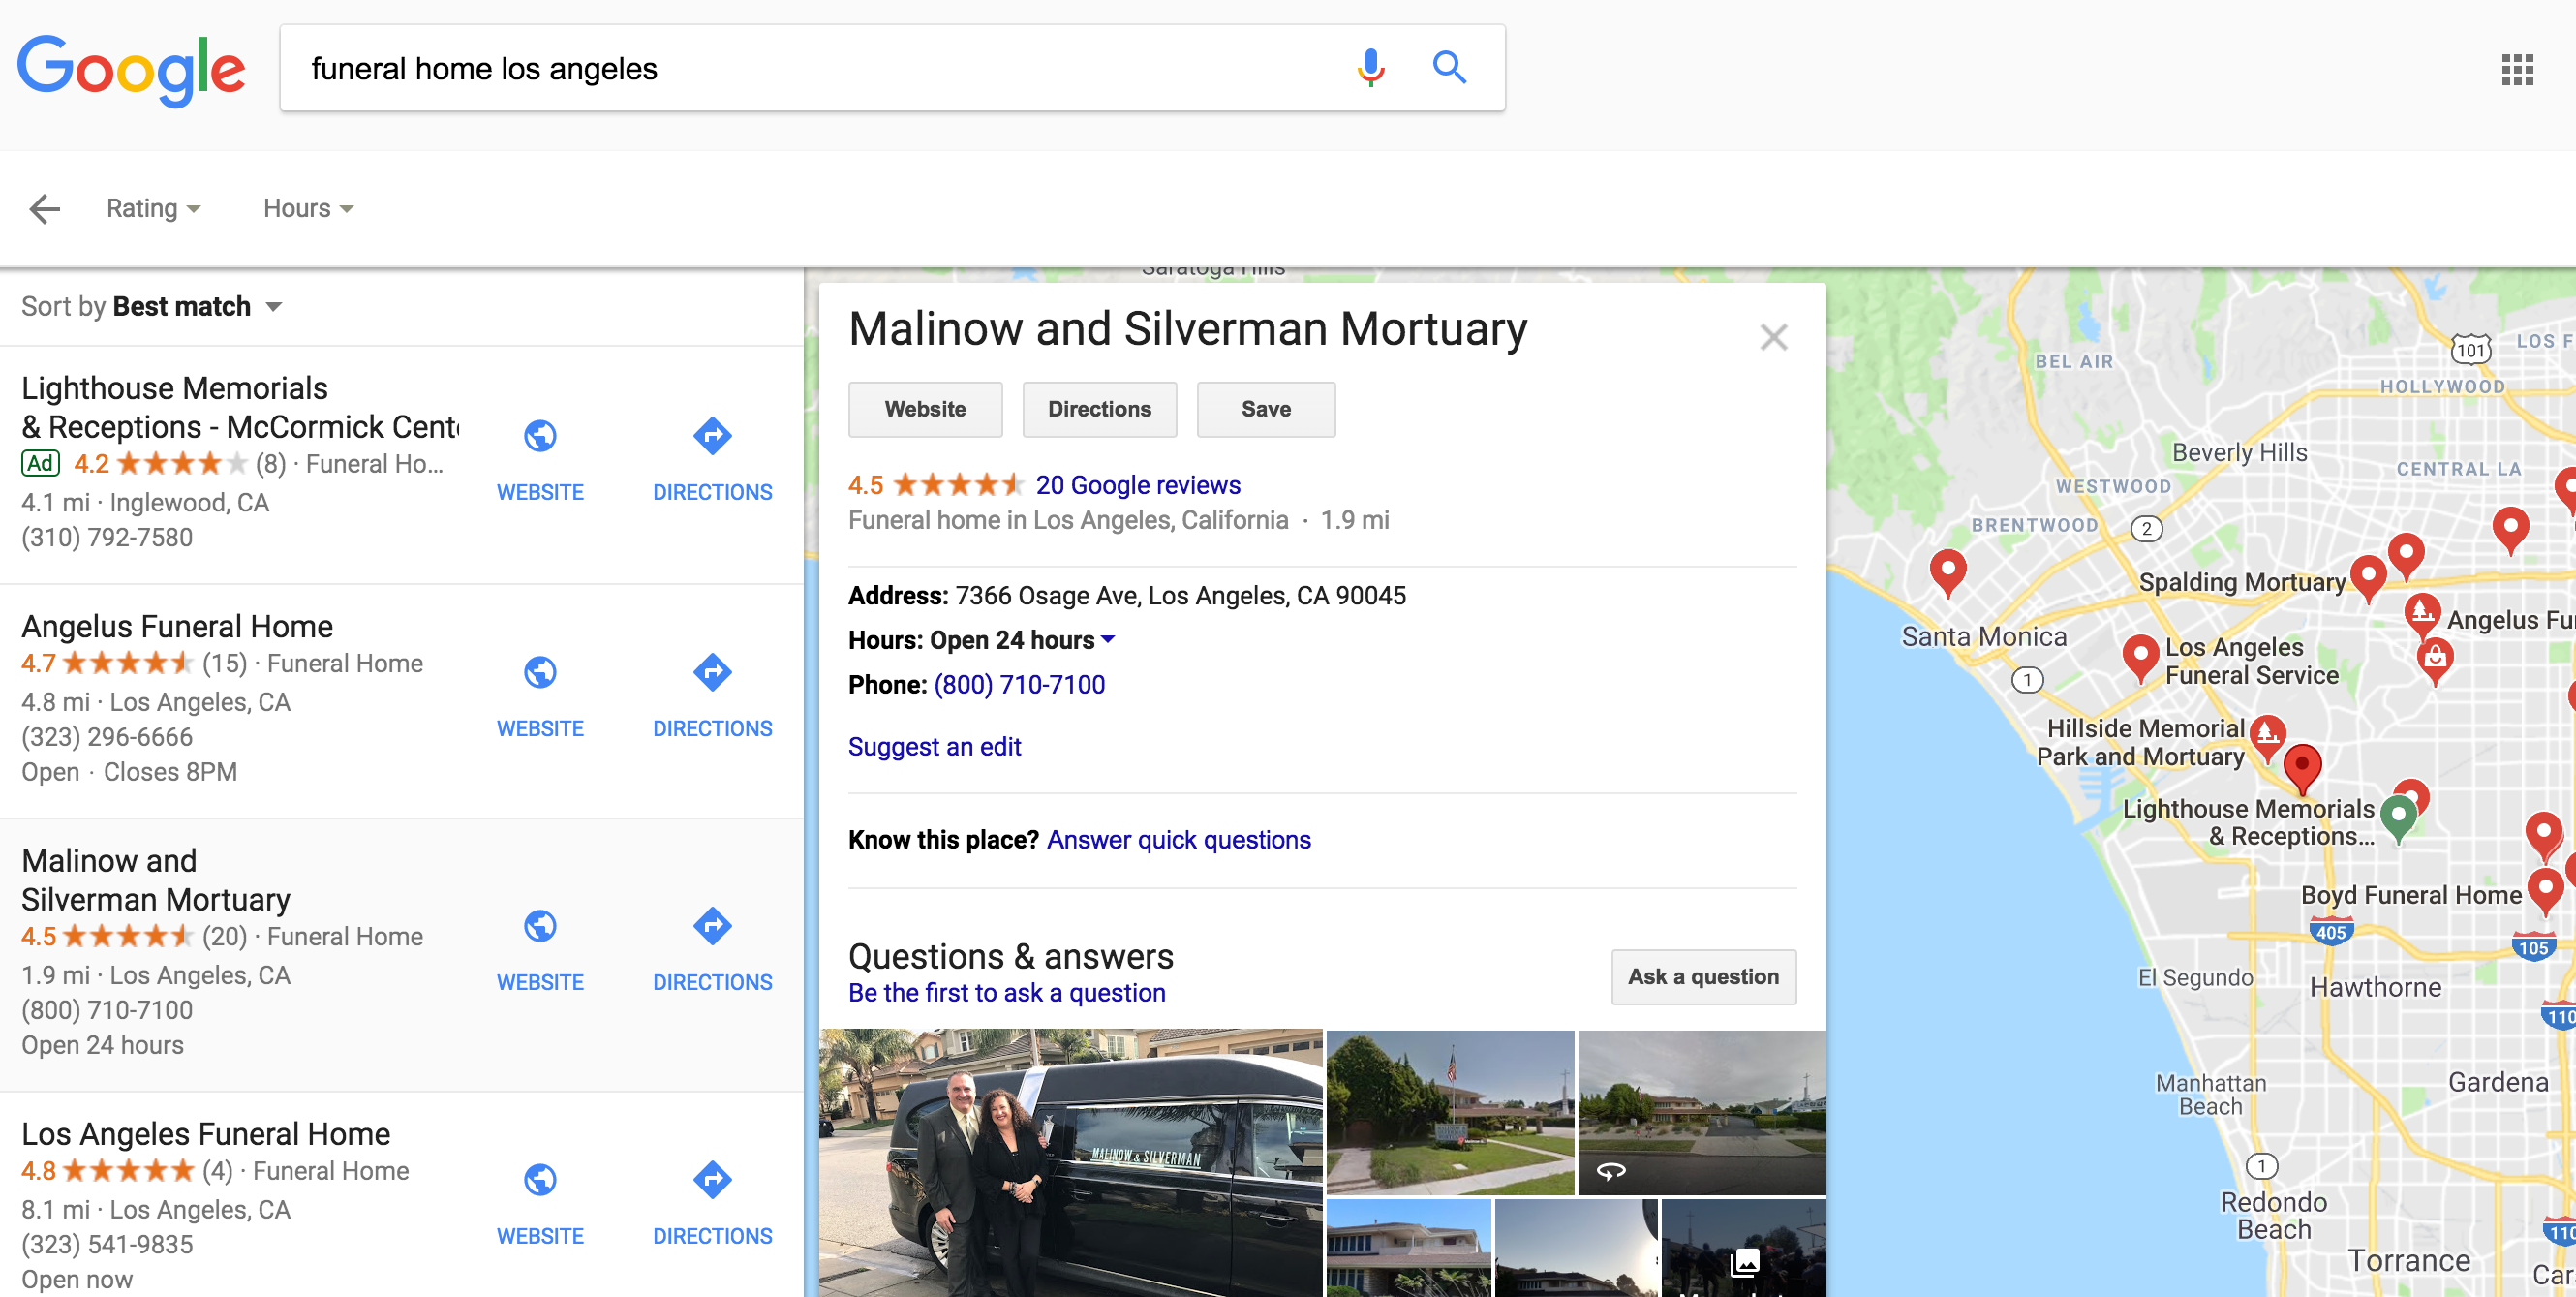 funeral_home_los_angeles_-_Google_Search